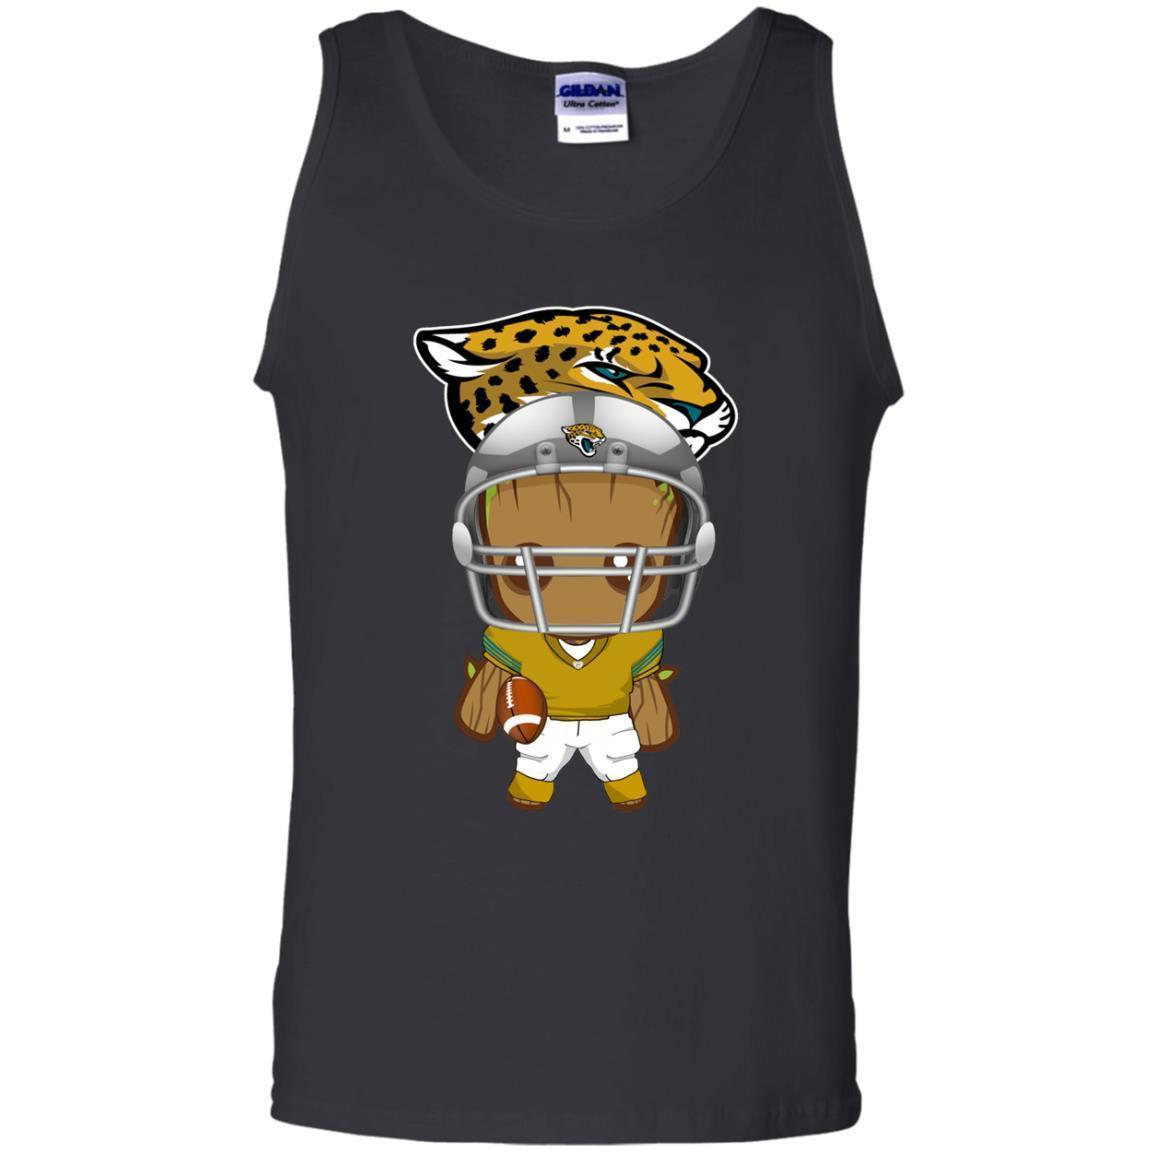 Find Baby Groot Jaguars Nfl Champions Tank Top Shirts